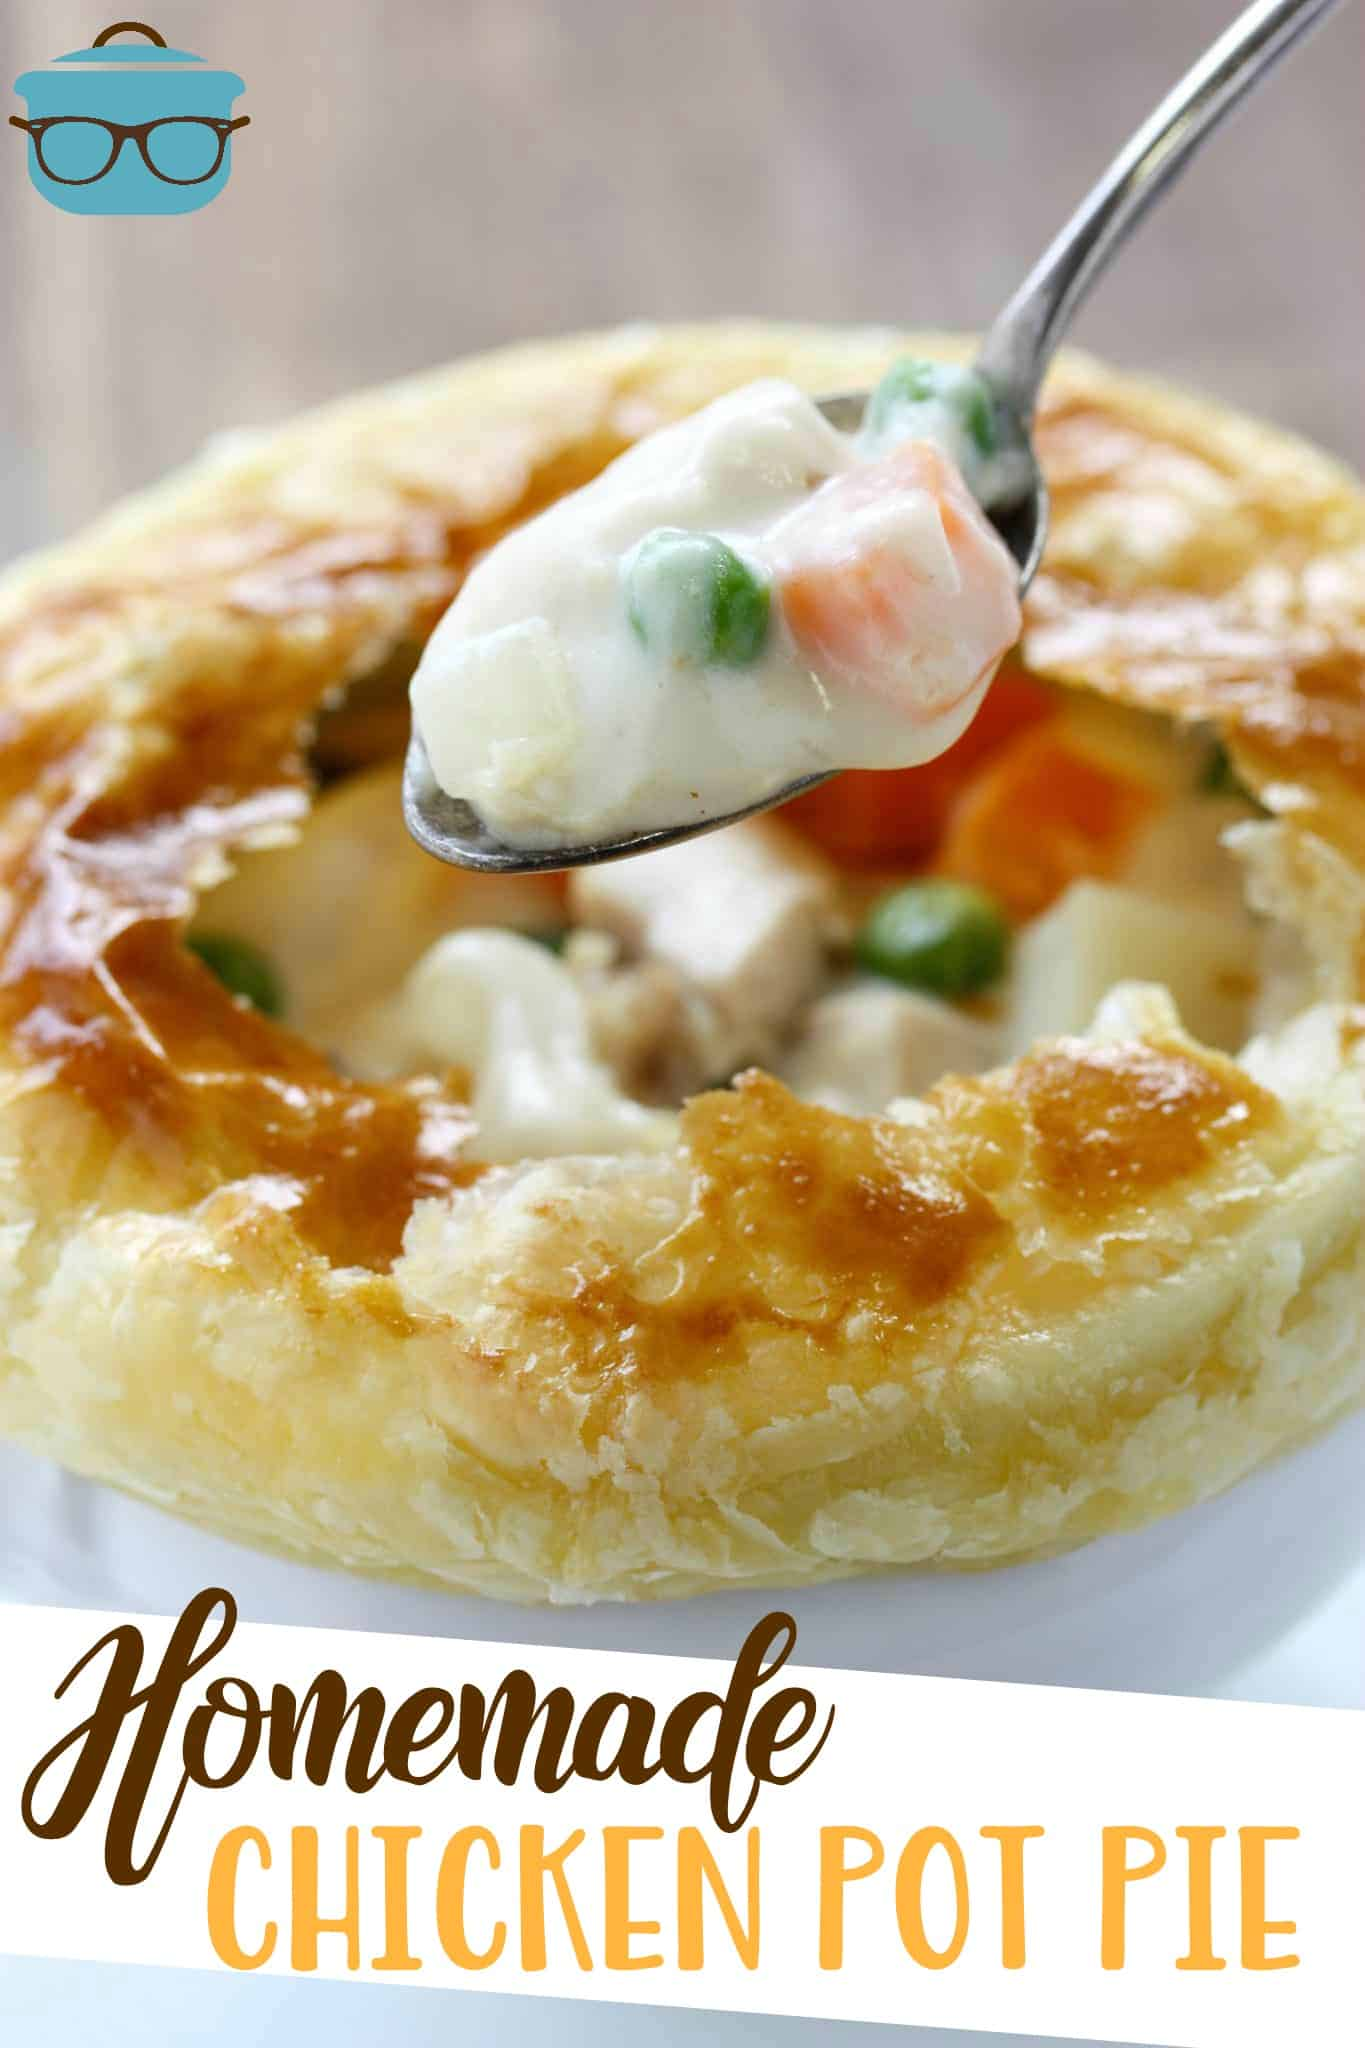 Homemade Chicken Pot Pie has the most delicious, thick, creamy filling with an easy puff pastry crust. Individual ramekins make for easy serving. #potpie #dinner